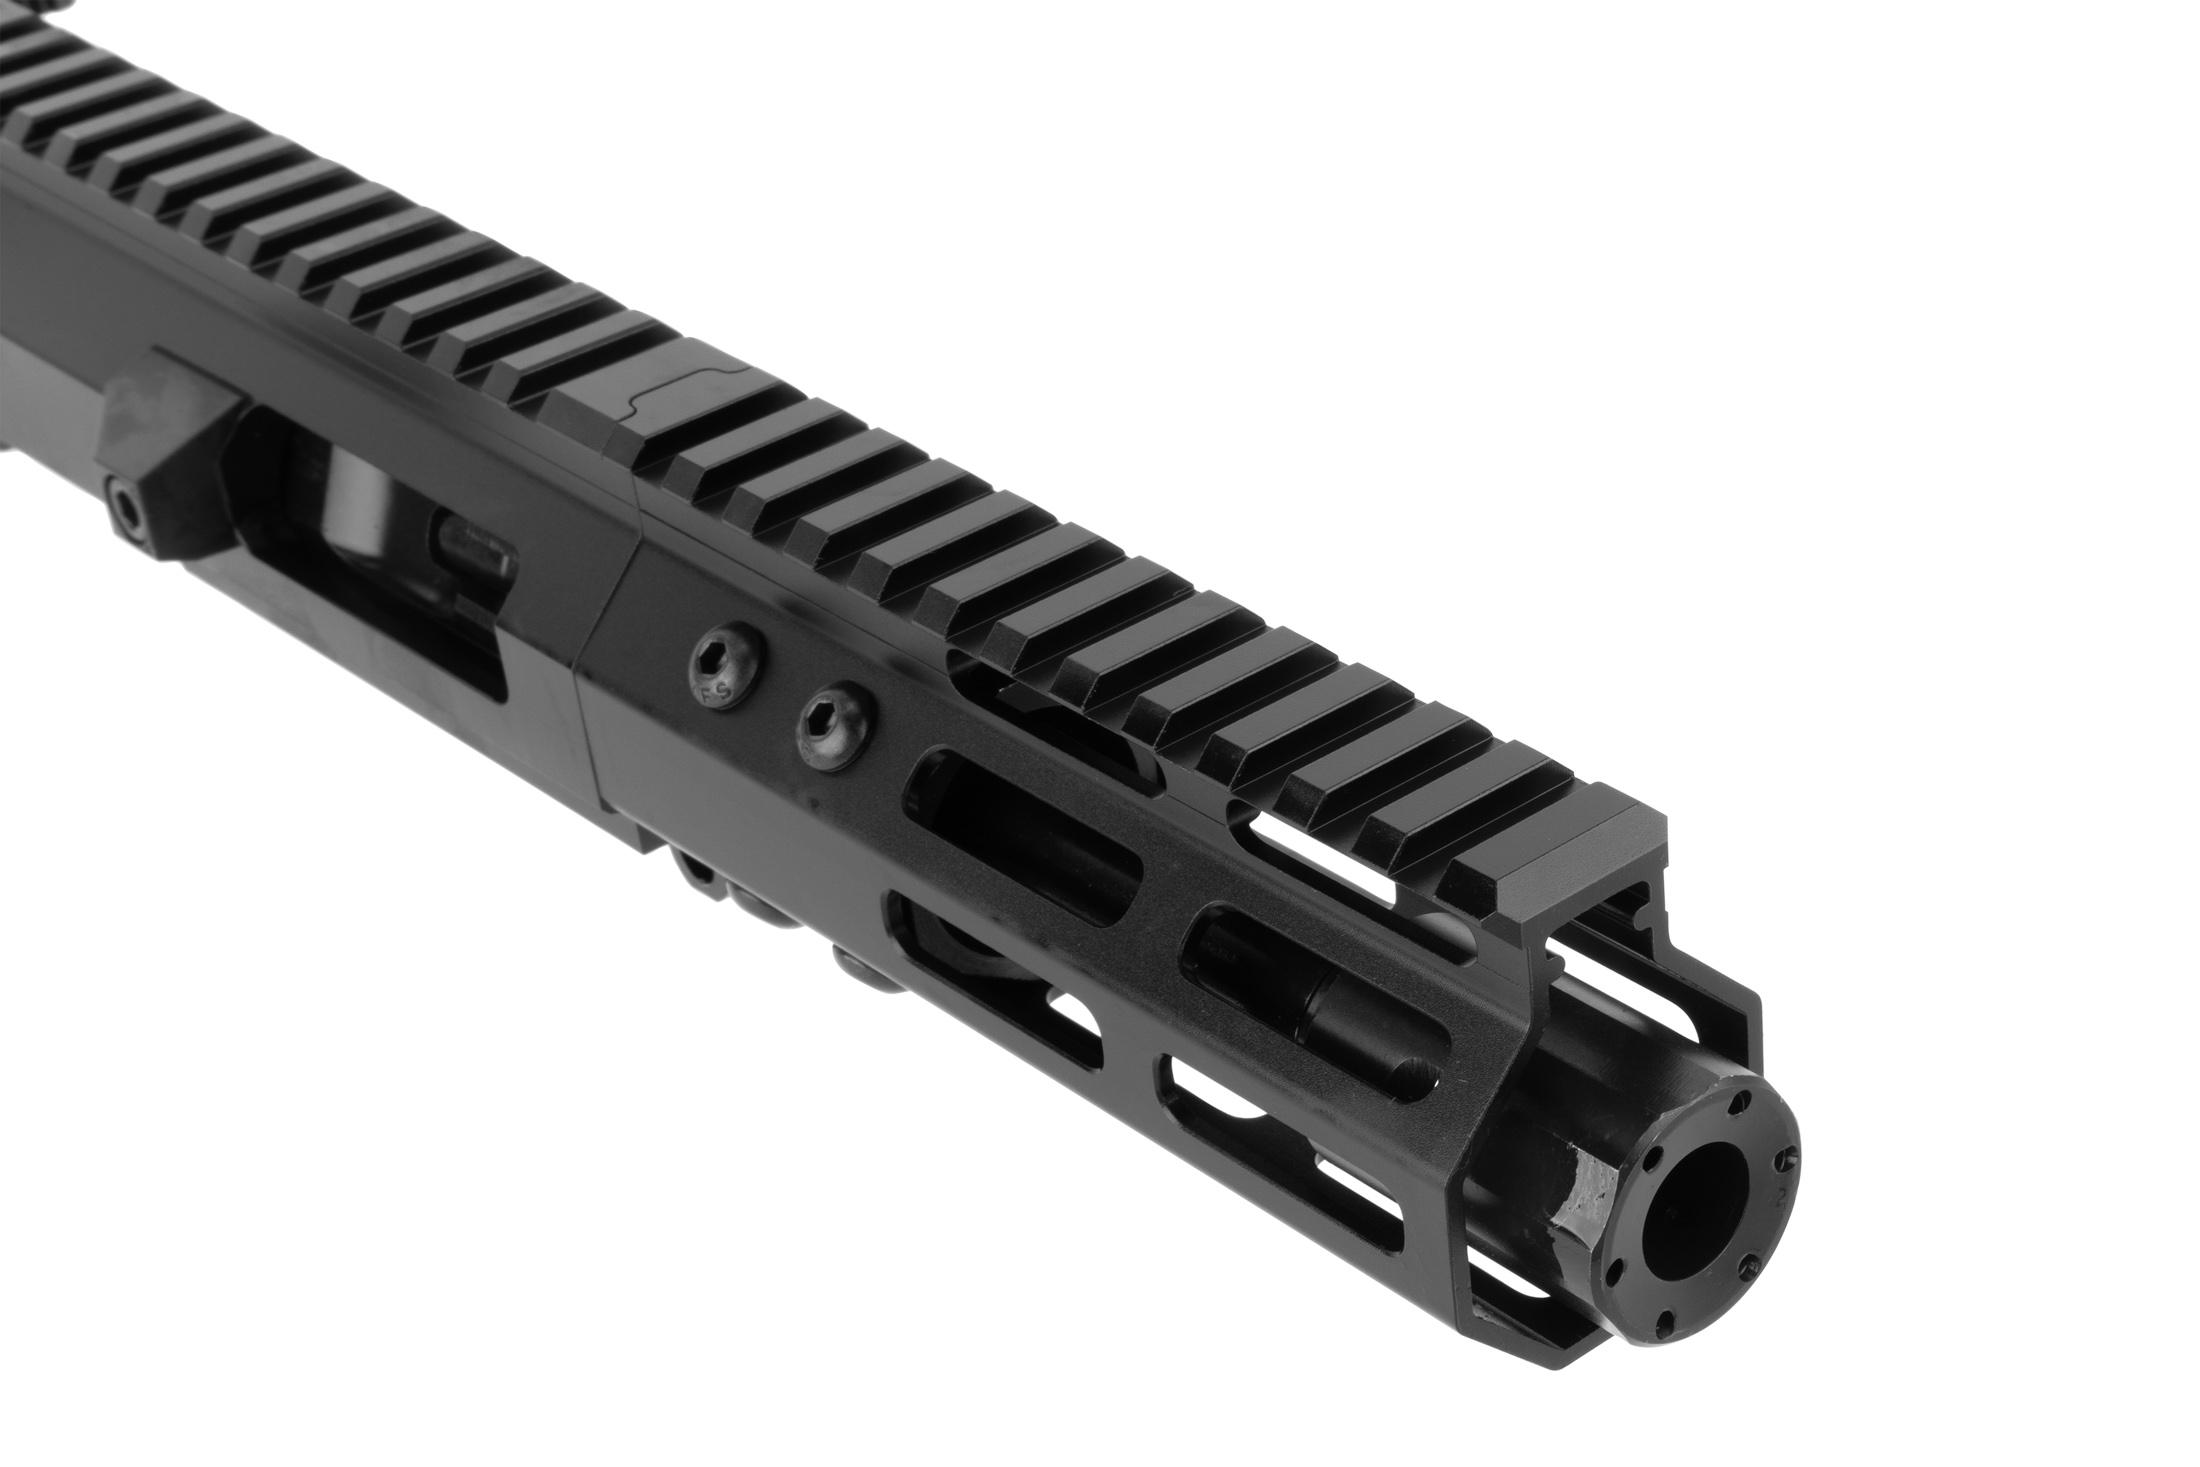 The FM Products 9mm AR complete upper has a full length picatinny top rail